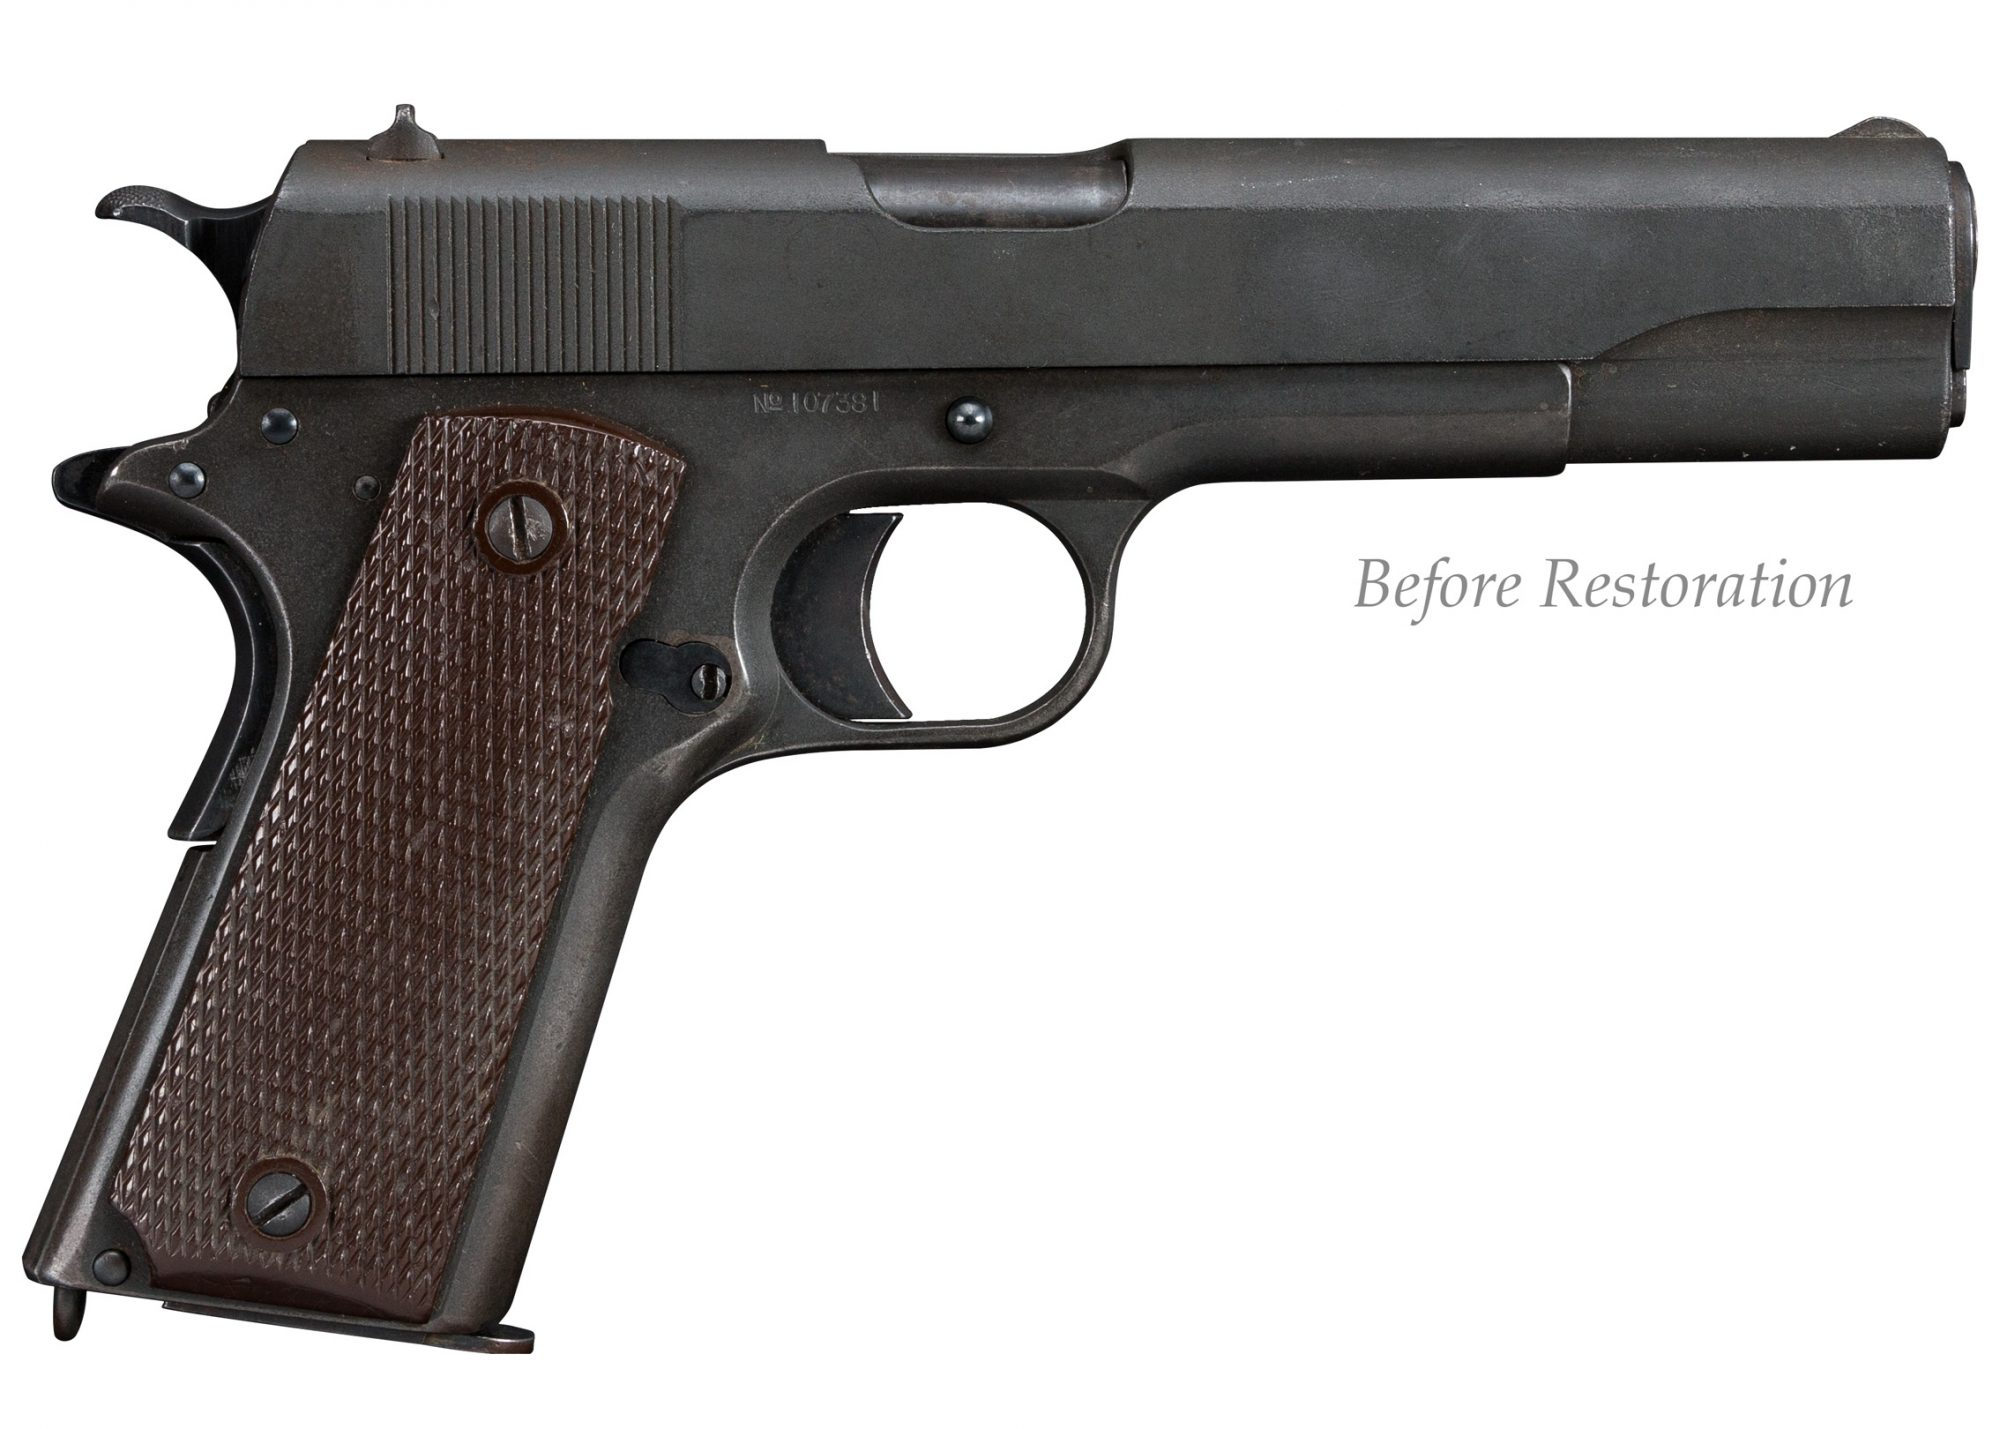 Photo of a Springfield Model 1911 from 1914, before full restoration by Turnbull Restoration